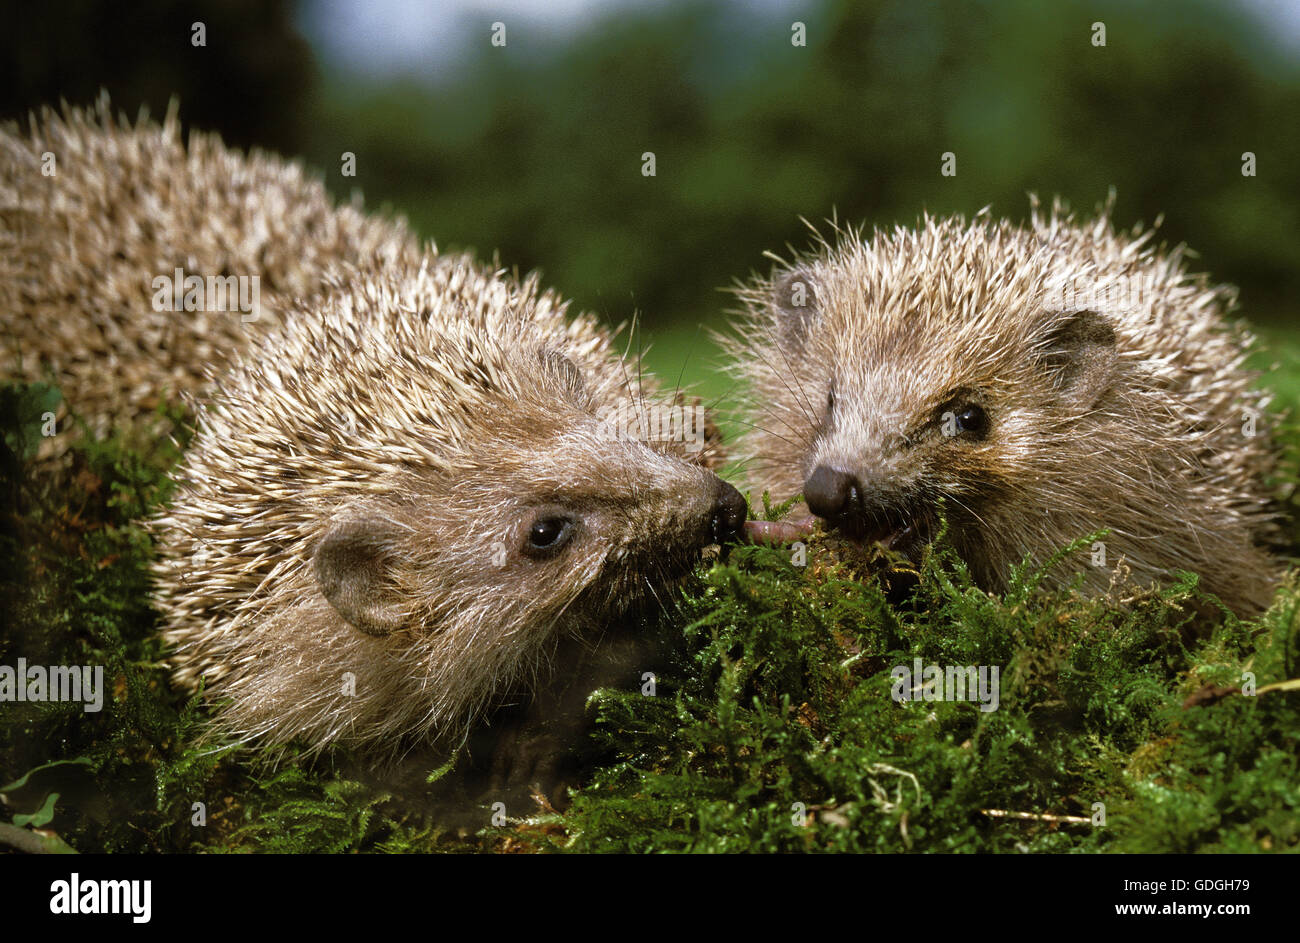 European Hedgehog, erinaceus europaeus, Normandy - Stock Image